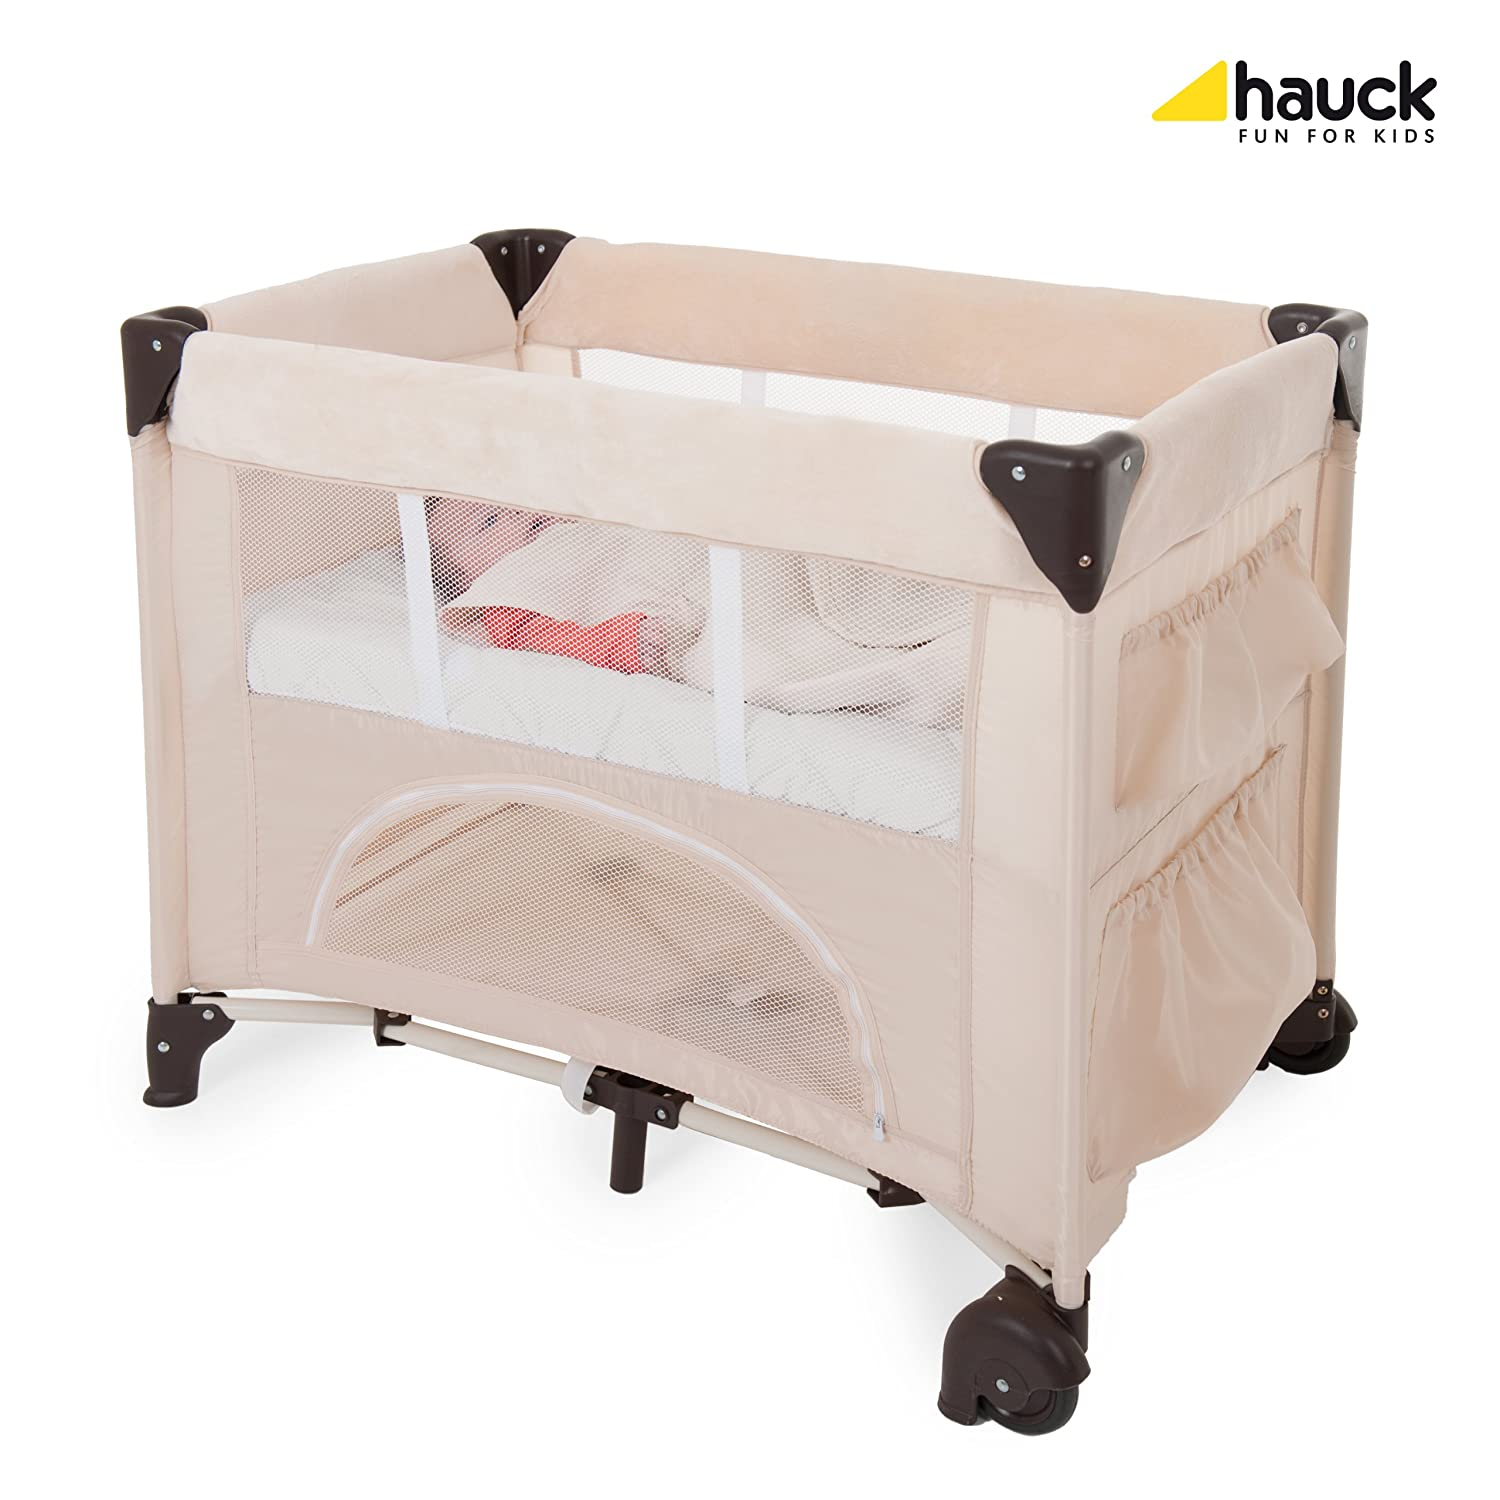 Hauck Bed Me - Sábana ajustable, 80 x 50 cm, color beige